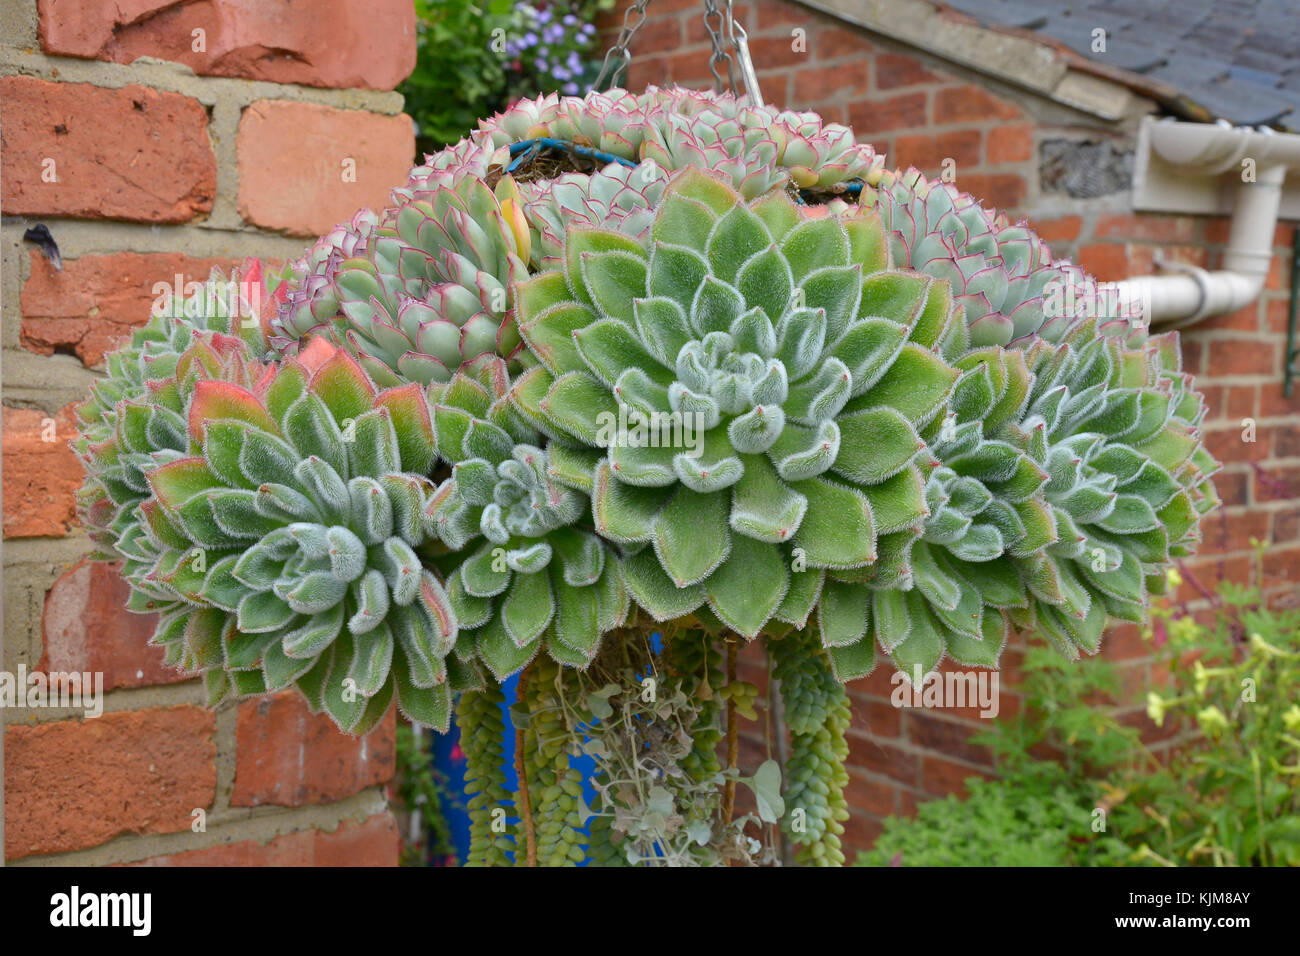 Succulent Hanging Basket High Resolution Stock Photography And Images Alamy